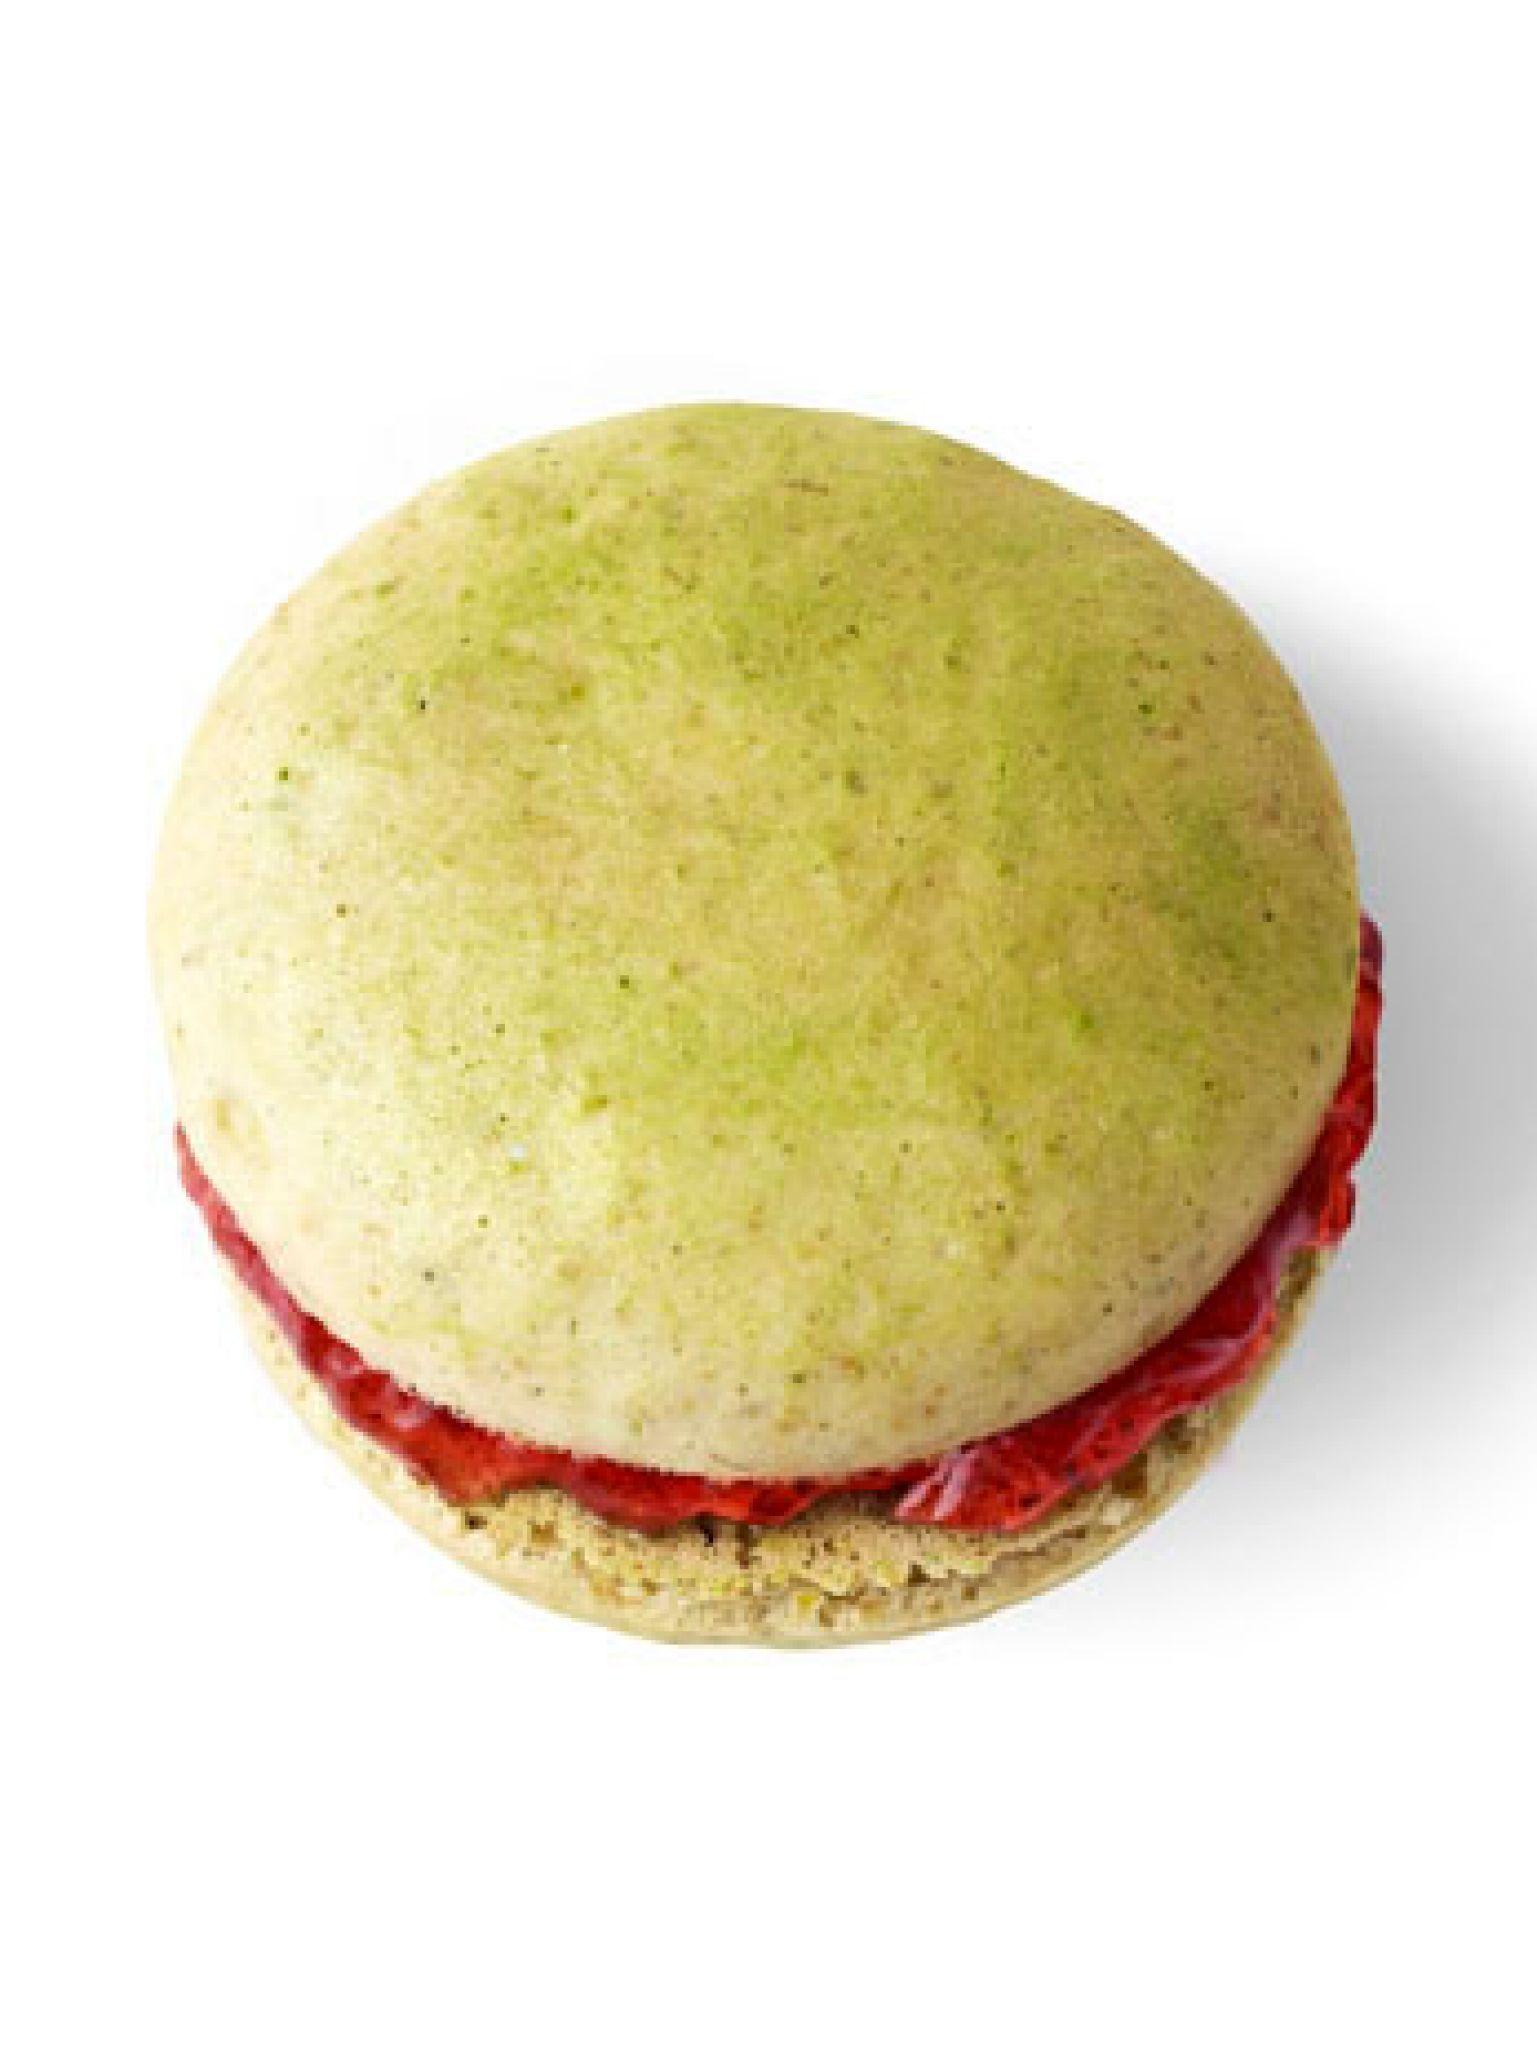 Pistachio Macarons Recipe Food Network Recipes Pistachio Macarons Macaroon Recipes